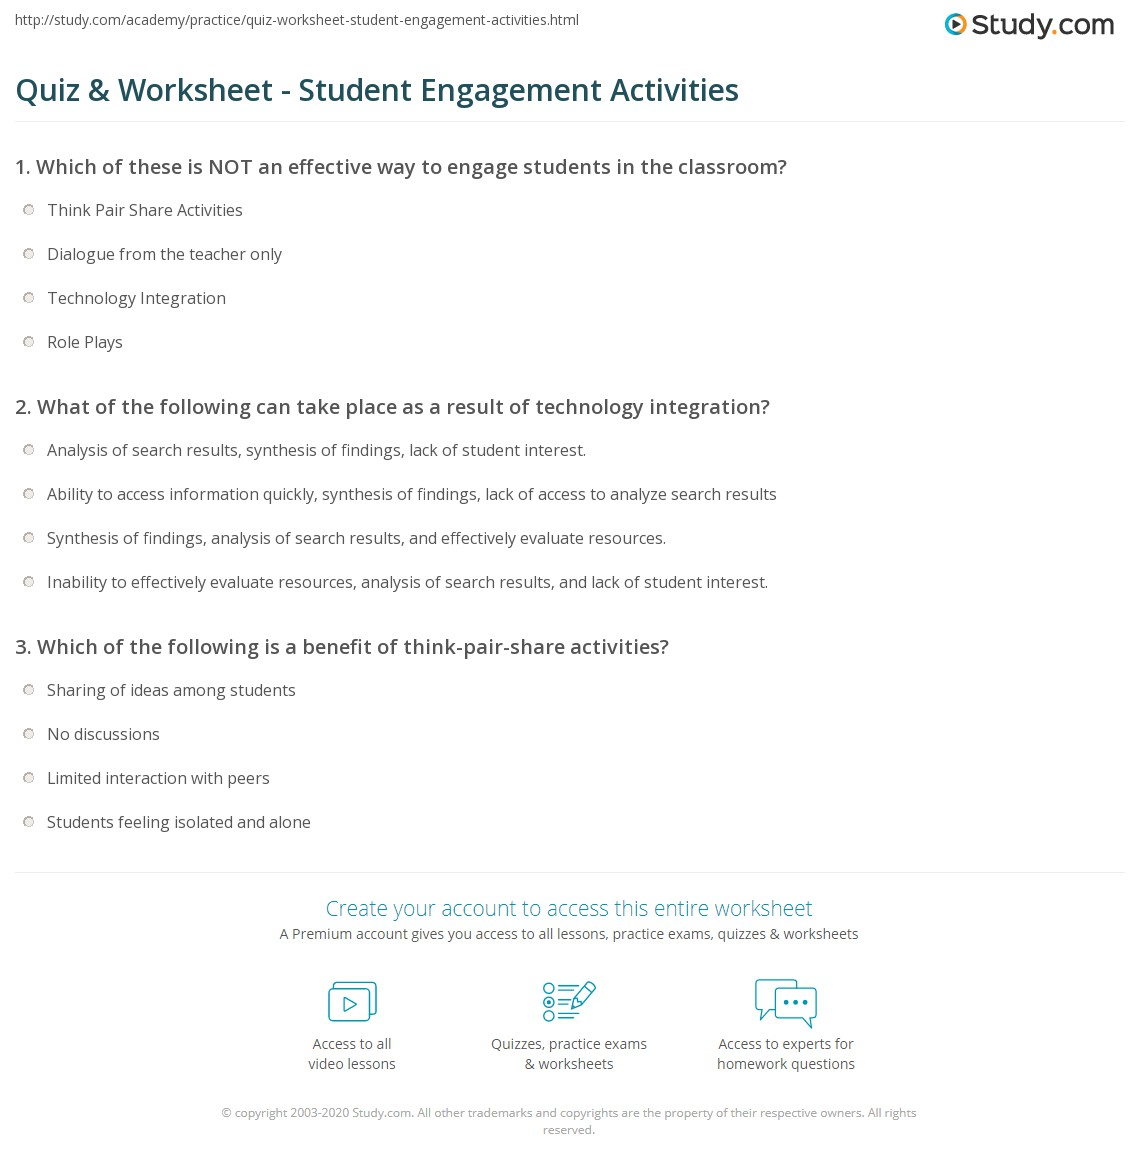 Quiz & Worksheet - Student Engagement Activities | Study com